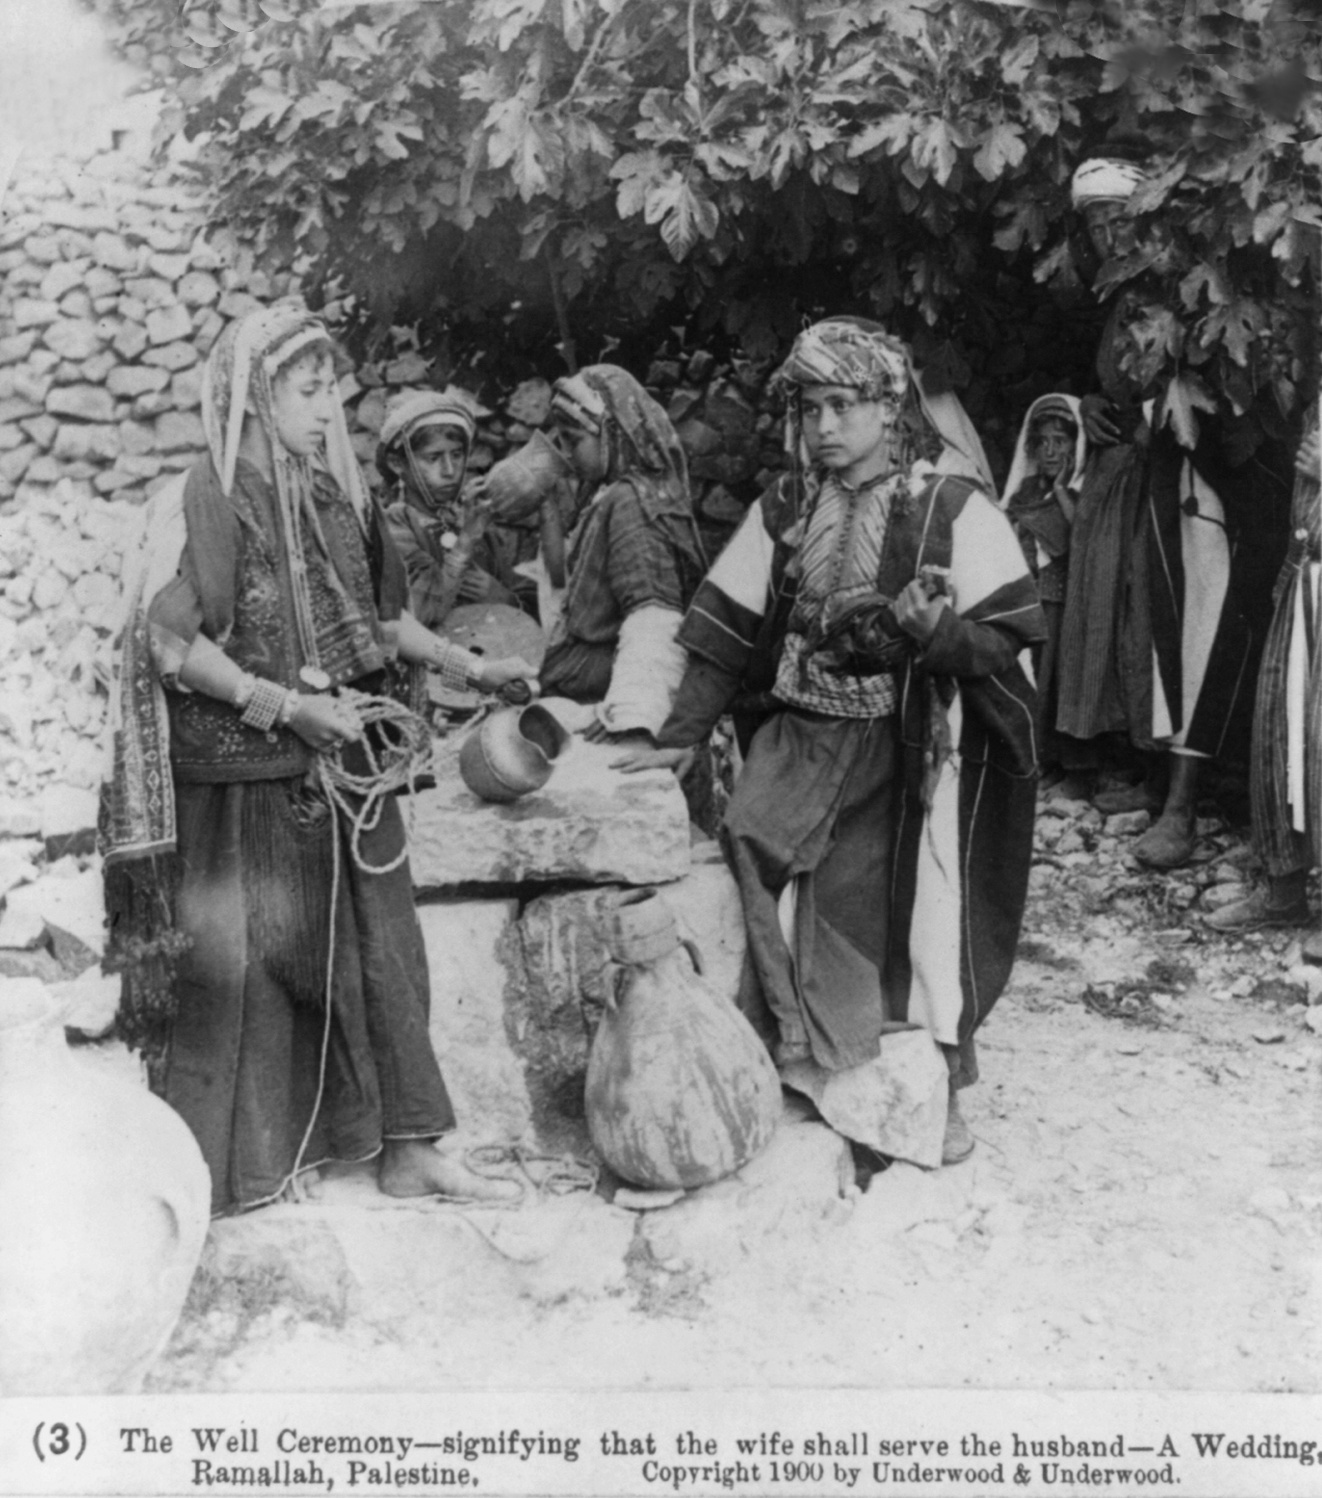 Ramallah - رام الله : A WEDDING AT RAMALLAH, PALESTINE (ca. 1900) - The well ceremony - signifying that the wife shall serve the husbandzz